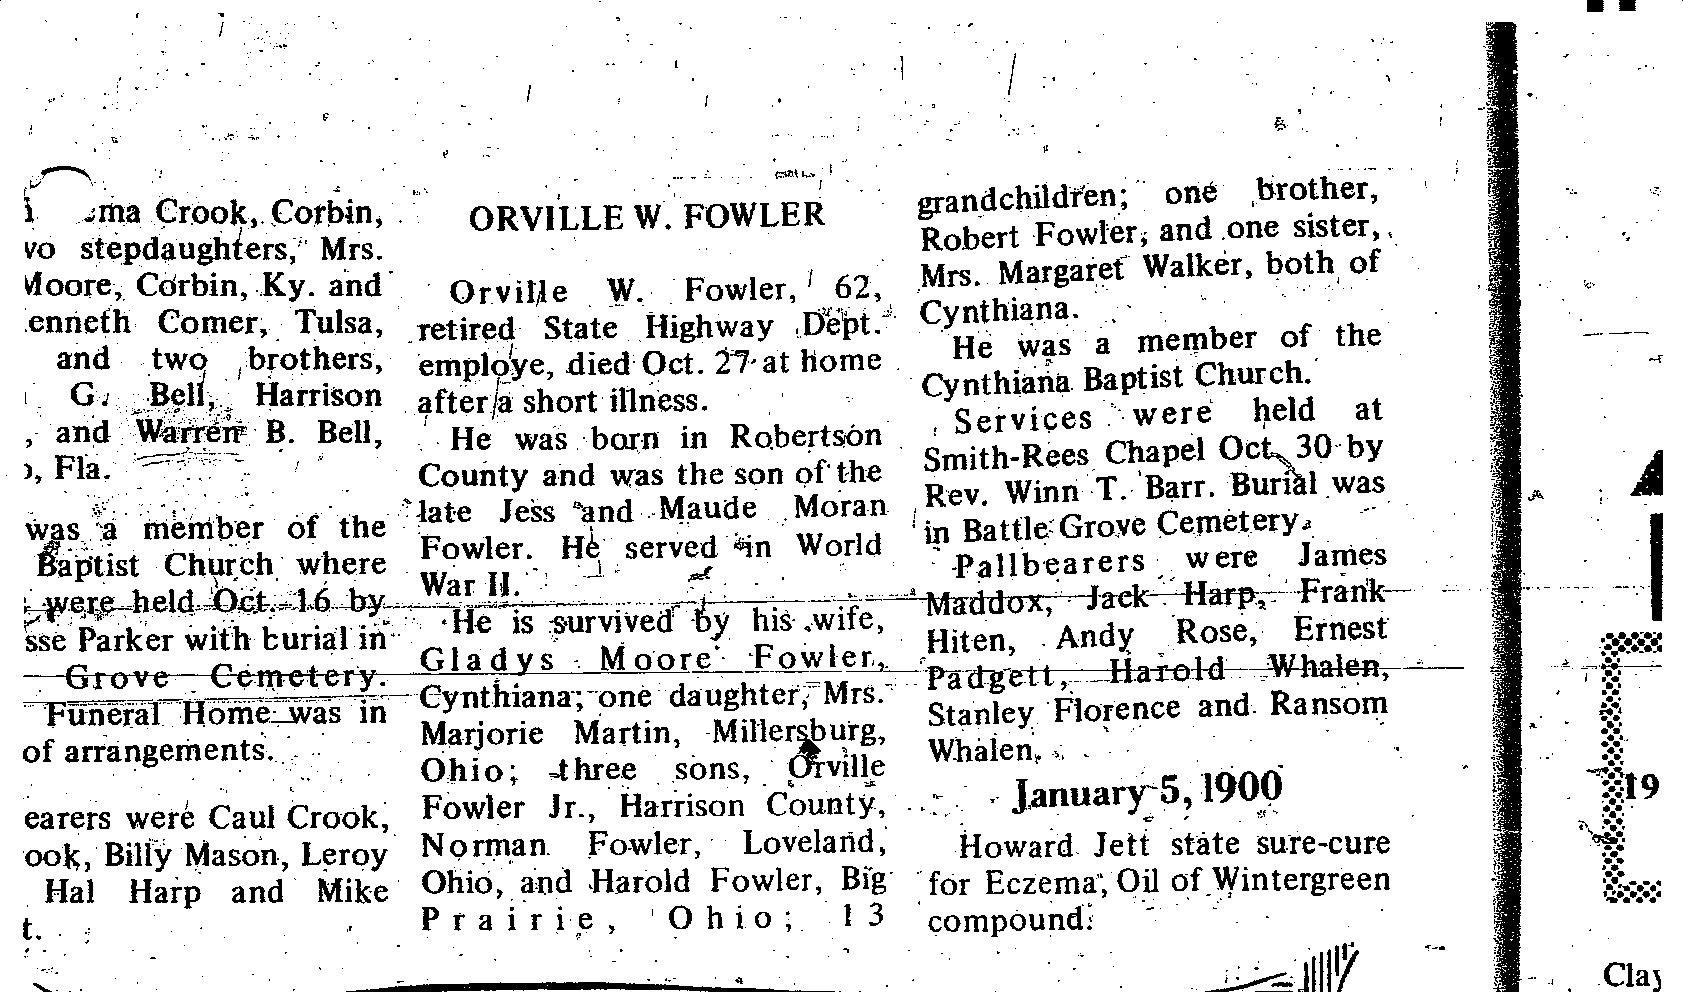 Orville Fowler